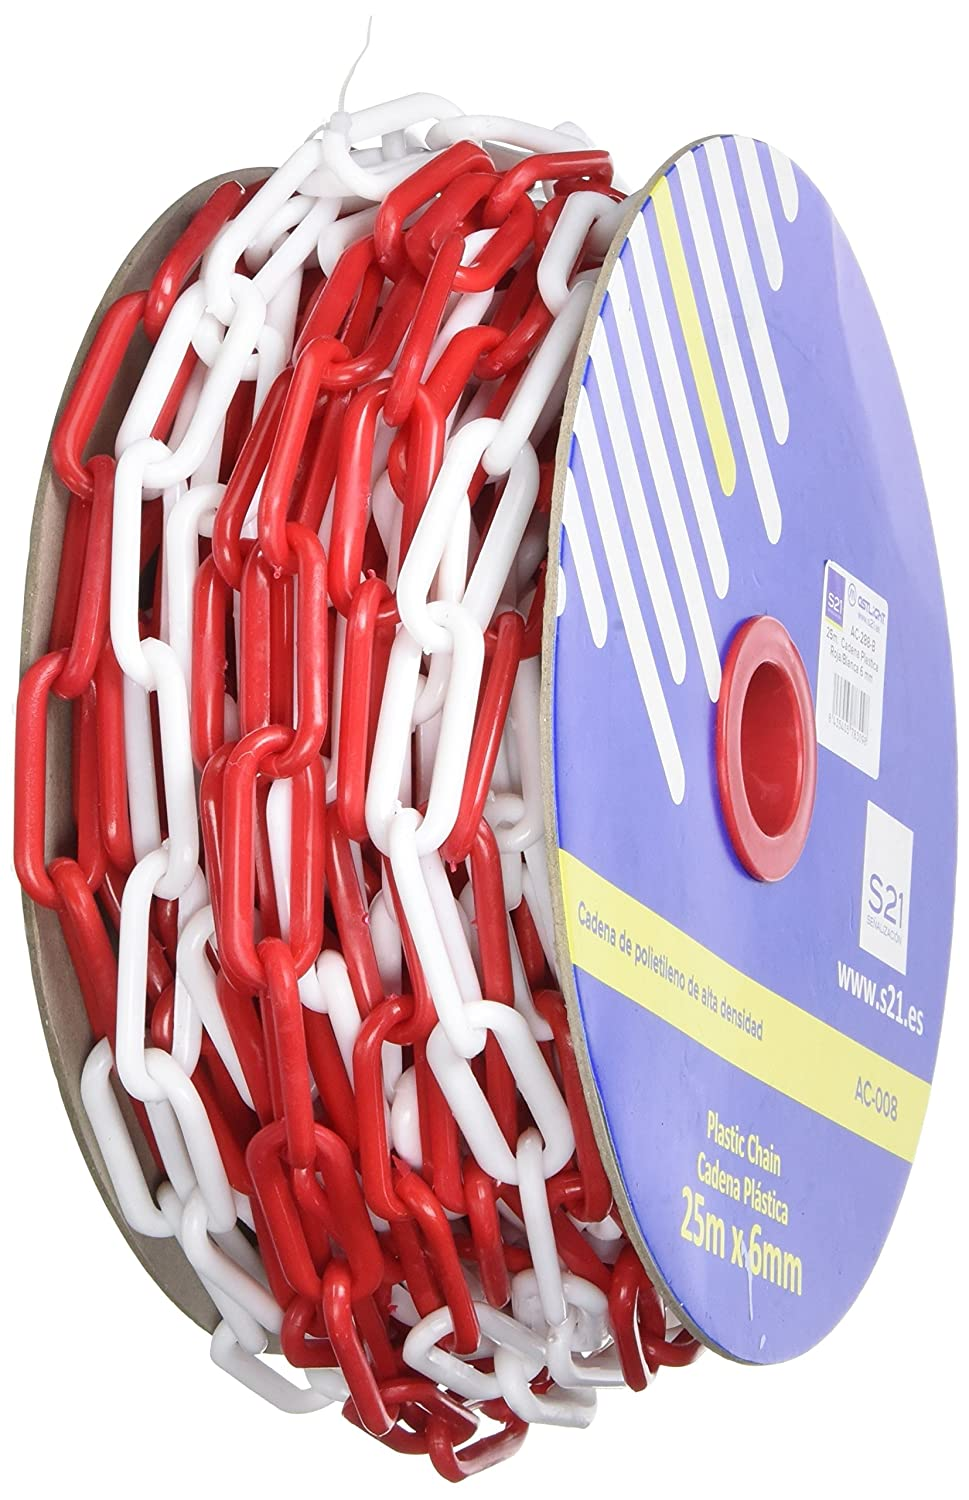 S21/ Signage ac-288-b/  / Chain Link Multicolor